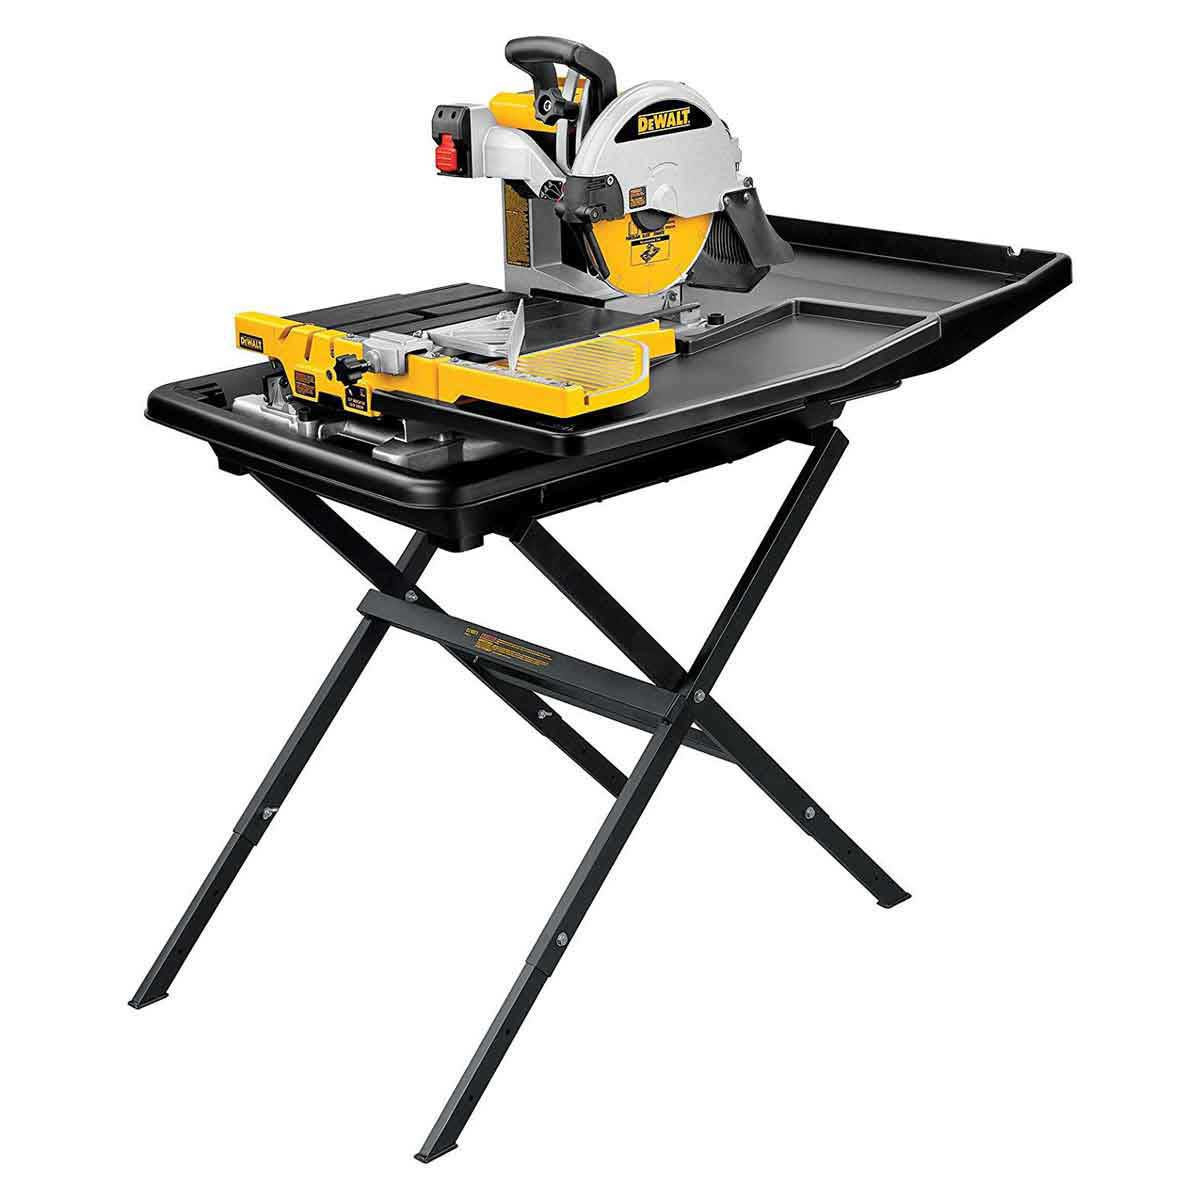 Dewalt D24000 wet tile saw and stand